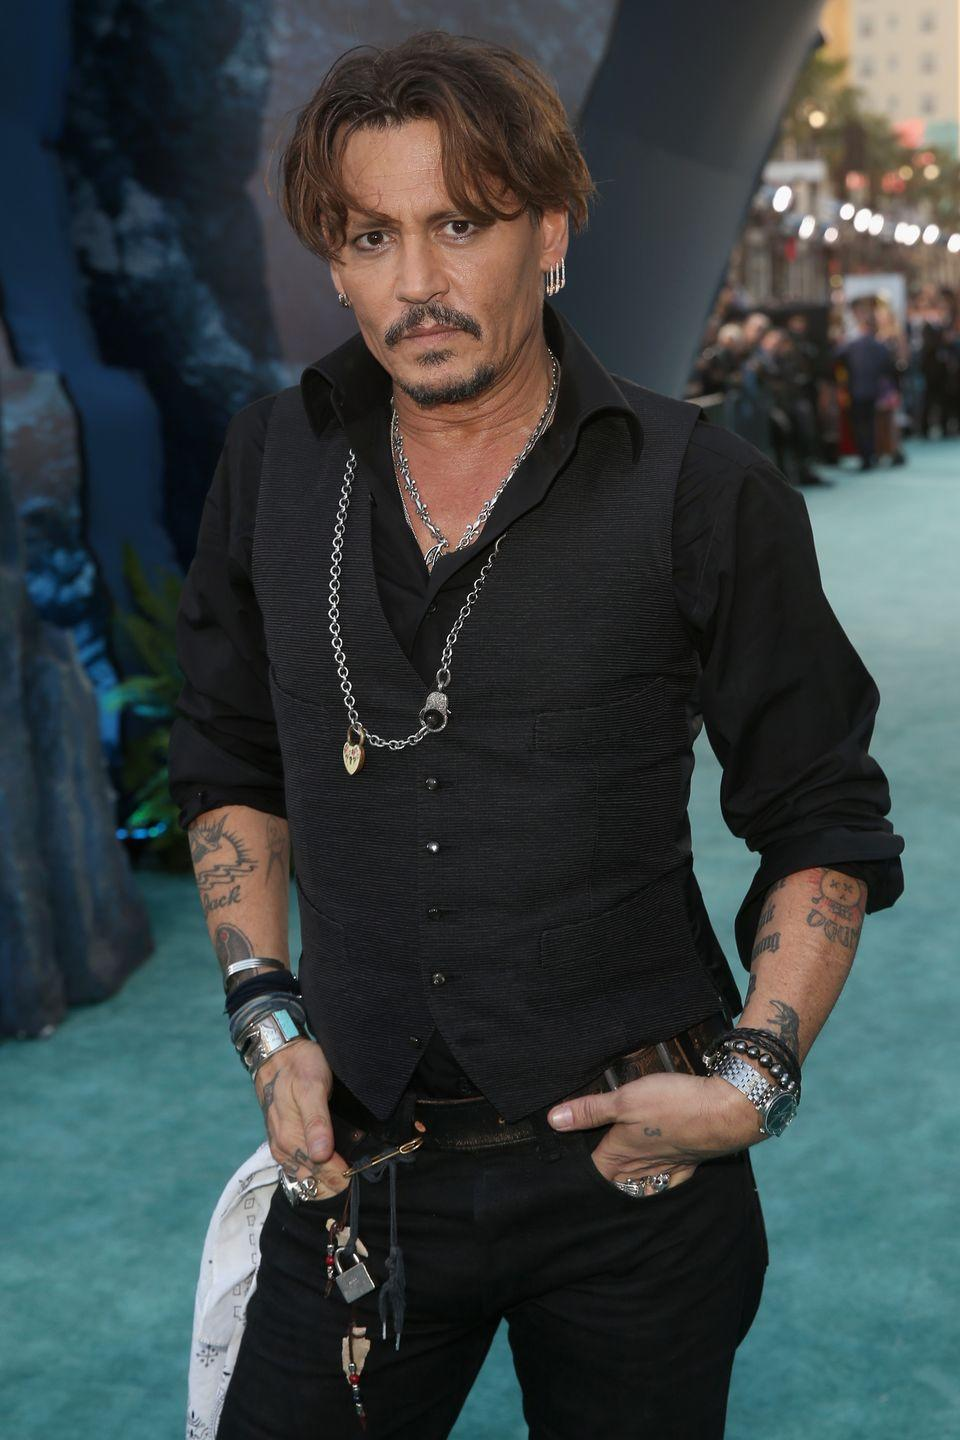 <p>Starting in 2003, Johnny's name became synonymous with Captain Jack Sparrow thanks to his role in the <em>Pirates of the Caribbean </em>franchise. The actor also recently appeared in the Harry Potter film <em>Fantastic Beasts and Where to Find Them</em> in 2016.</p>